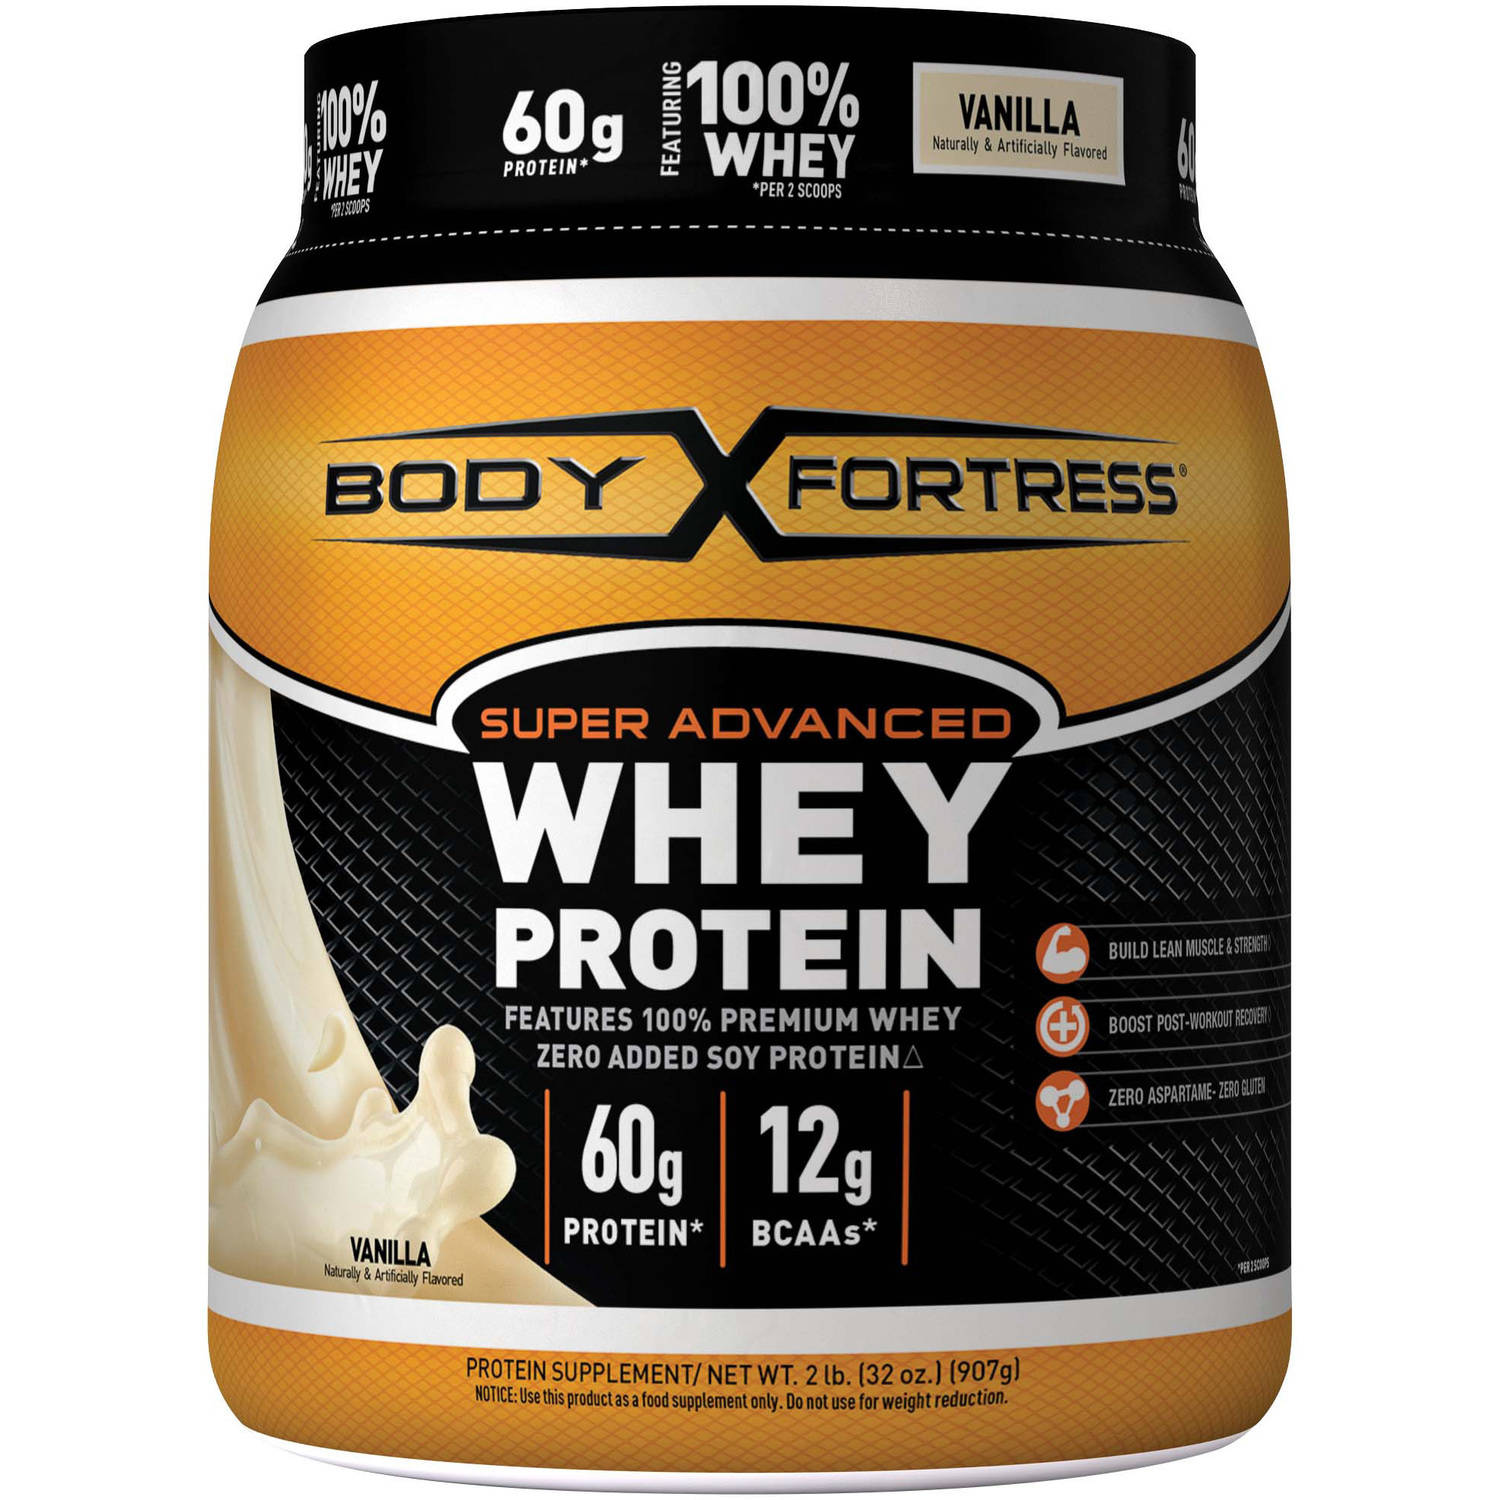 Body Fortress Super Advanced Whey Protein Powder, Vanilla, 2 lbs